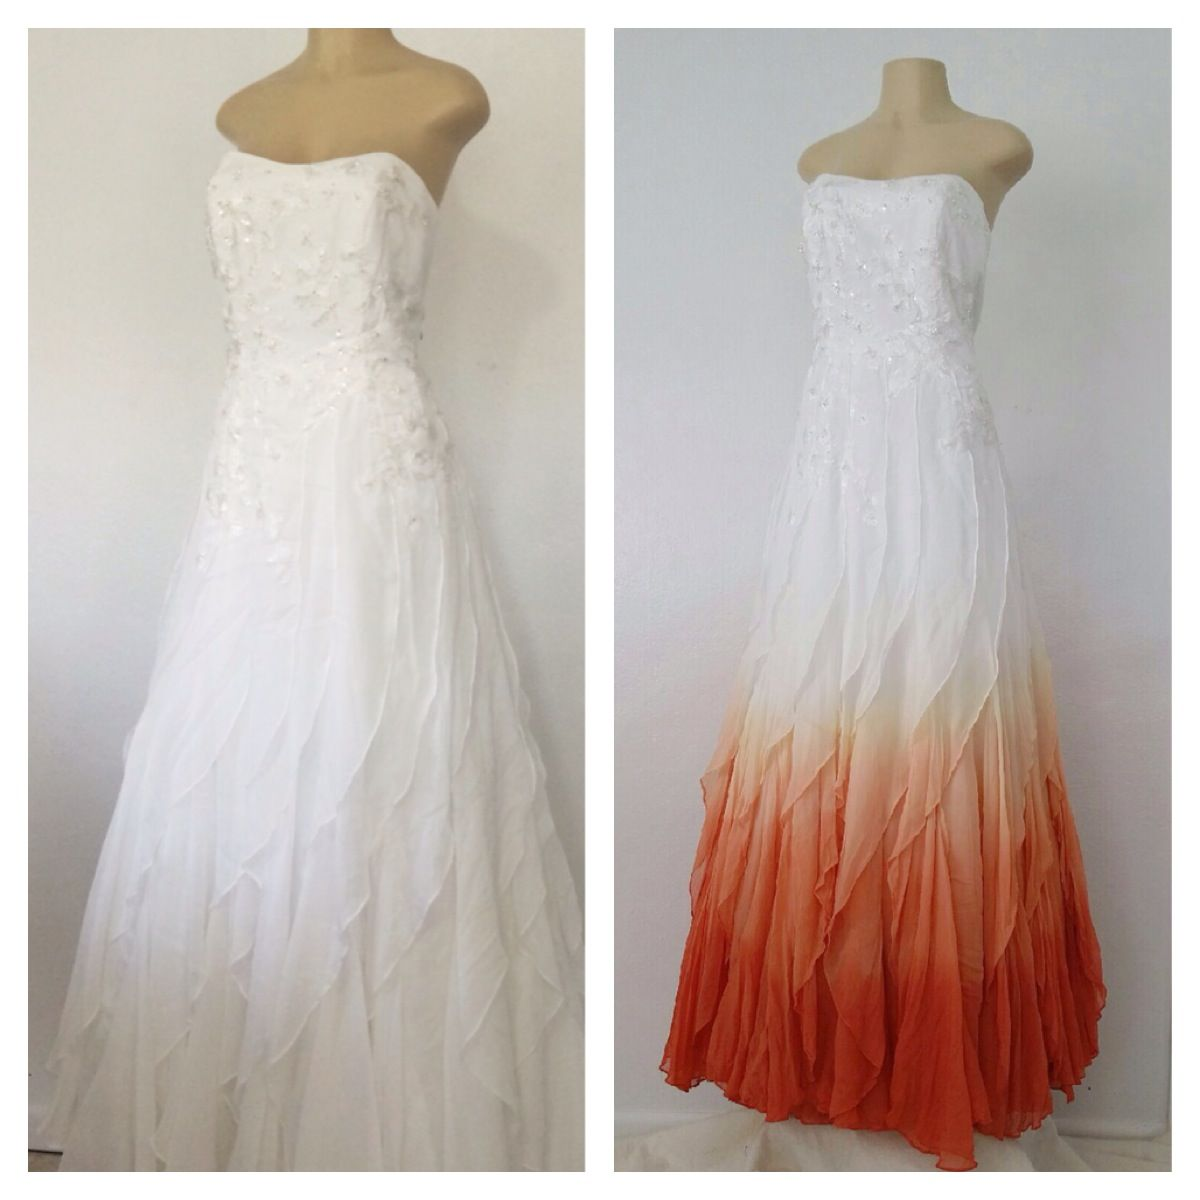 ombre wedding dress This gown was ombre dyed to a deep burnt orange You can see the bride